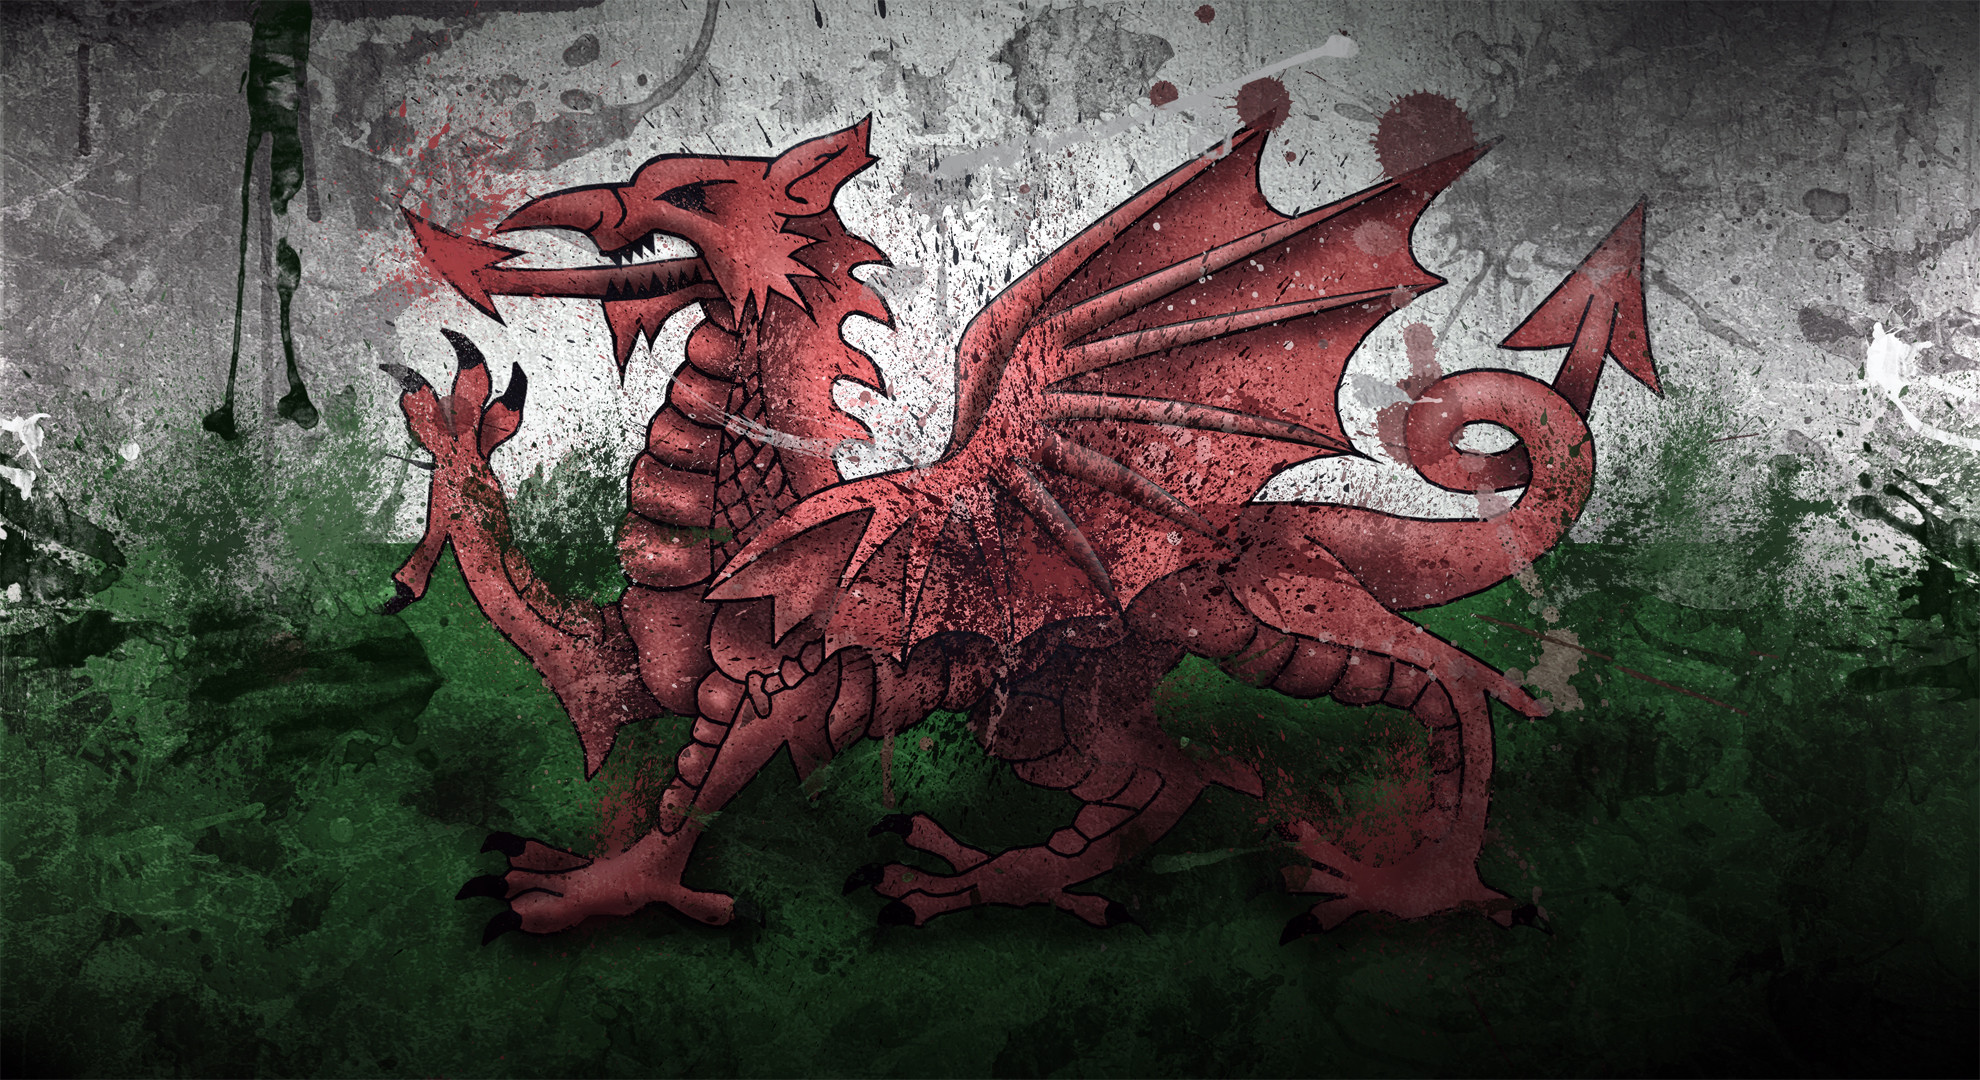 Welsh Flag Wallpaper 57 images 1980x1080